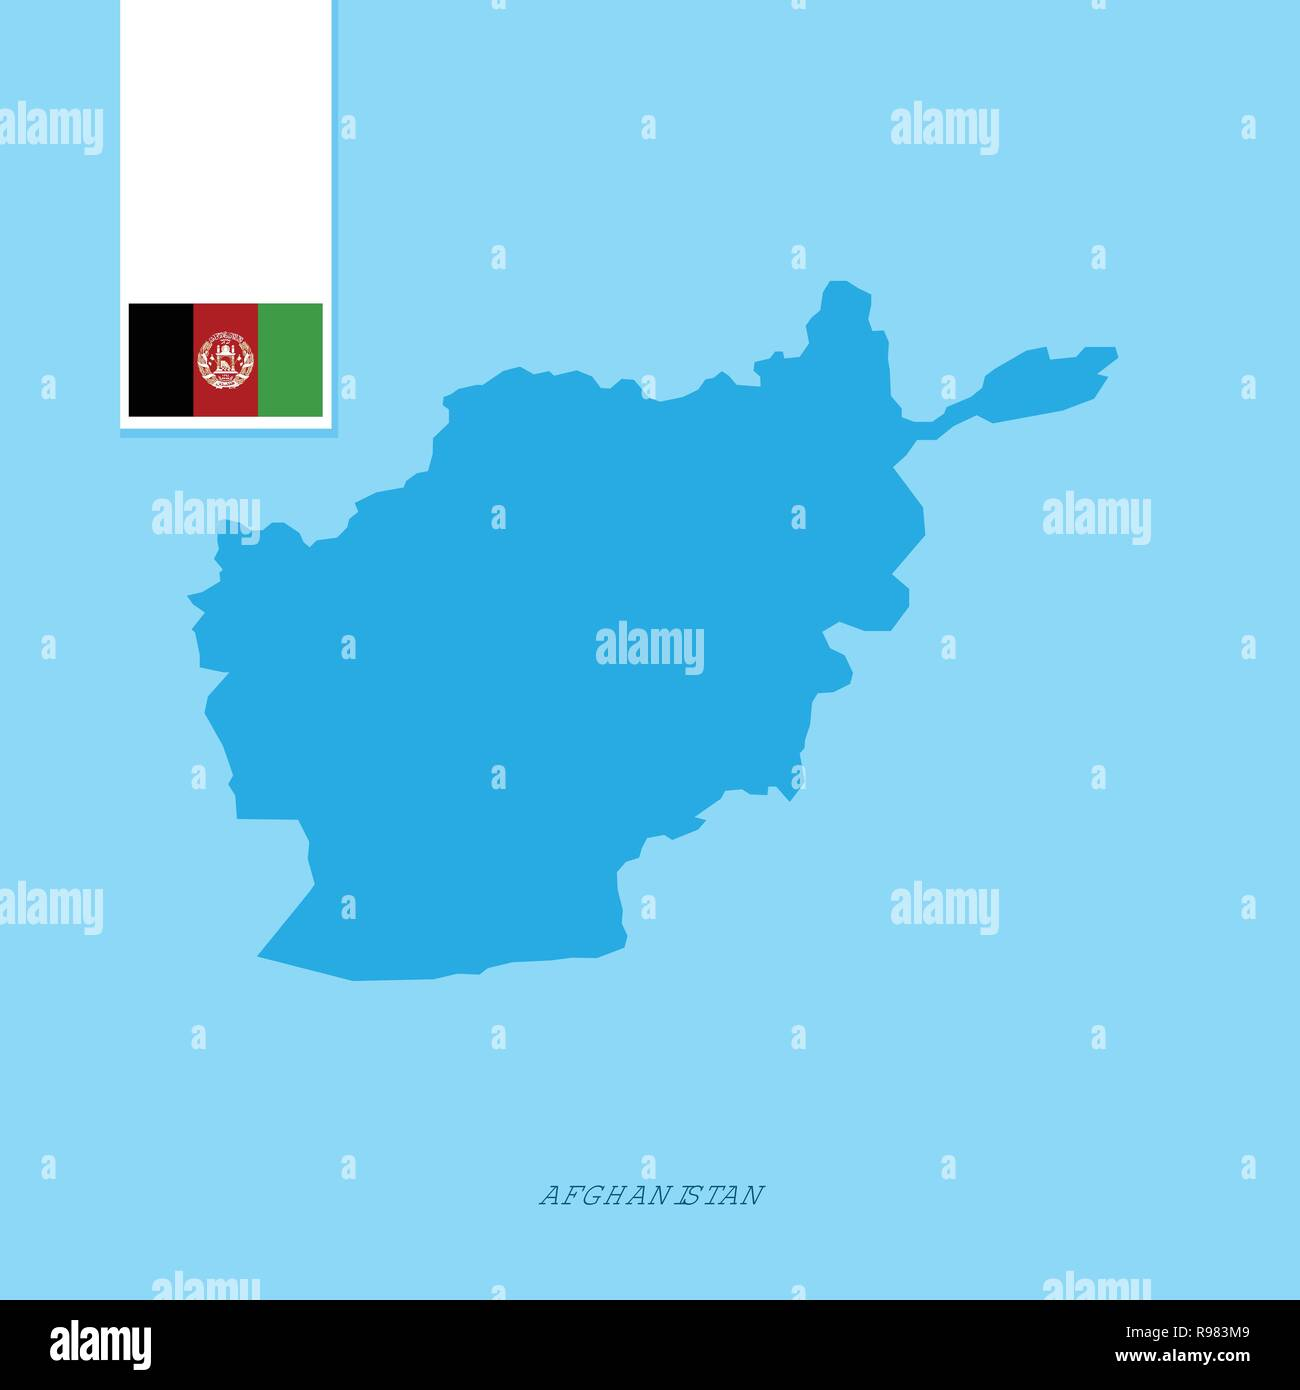 Afghanistan Country Map Stock Photos & Afghanistan Country Map Stock ...